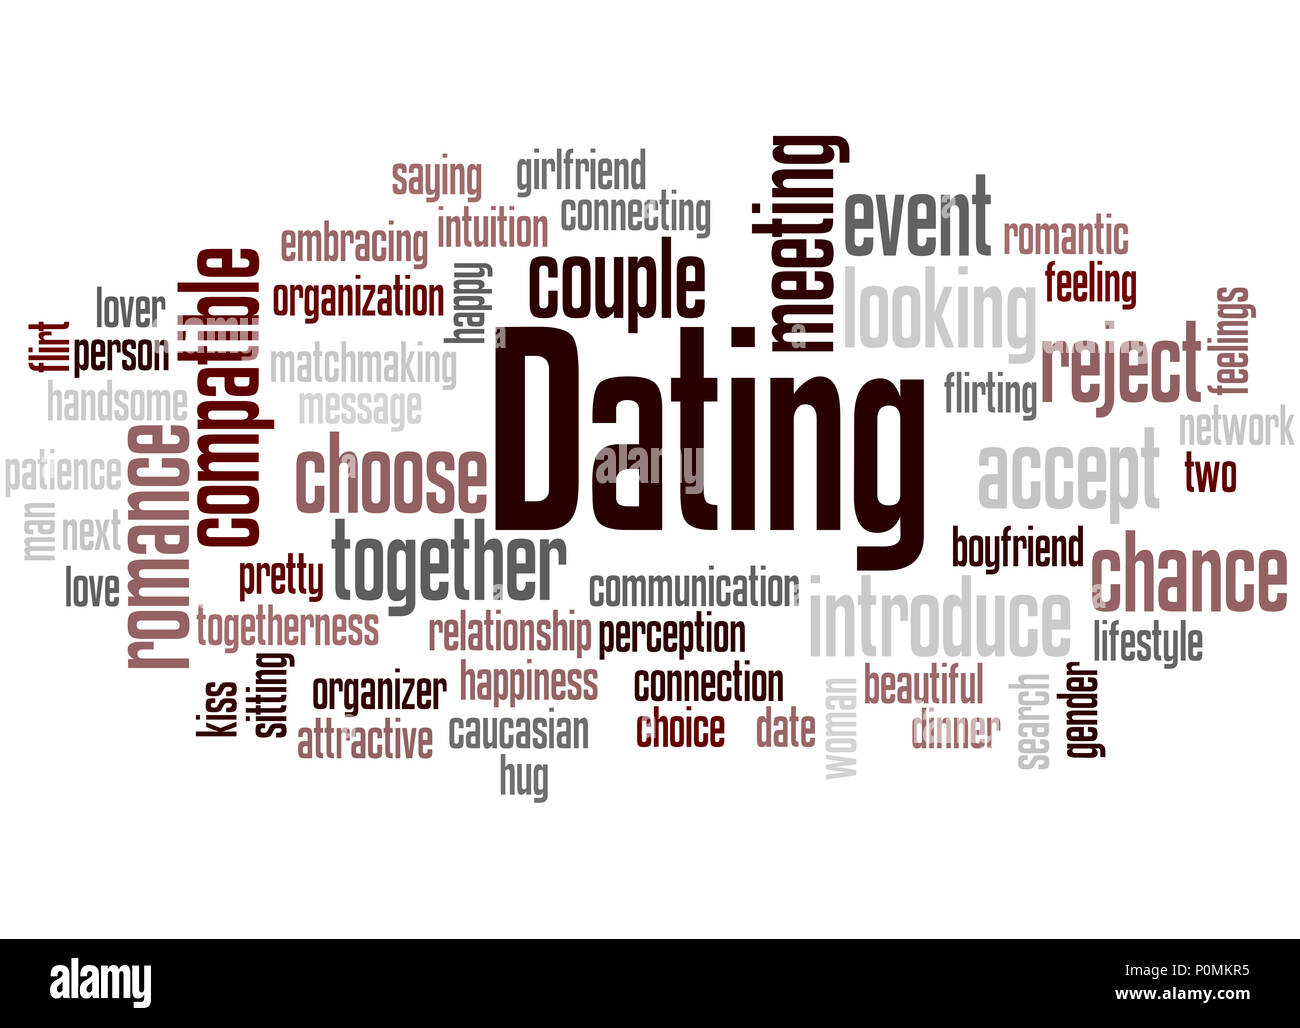 Dating word cloud concept on white background. Stock Photo